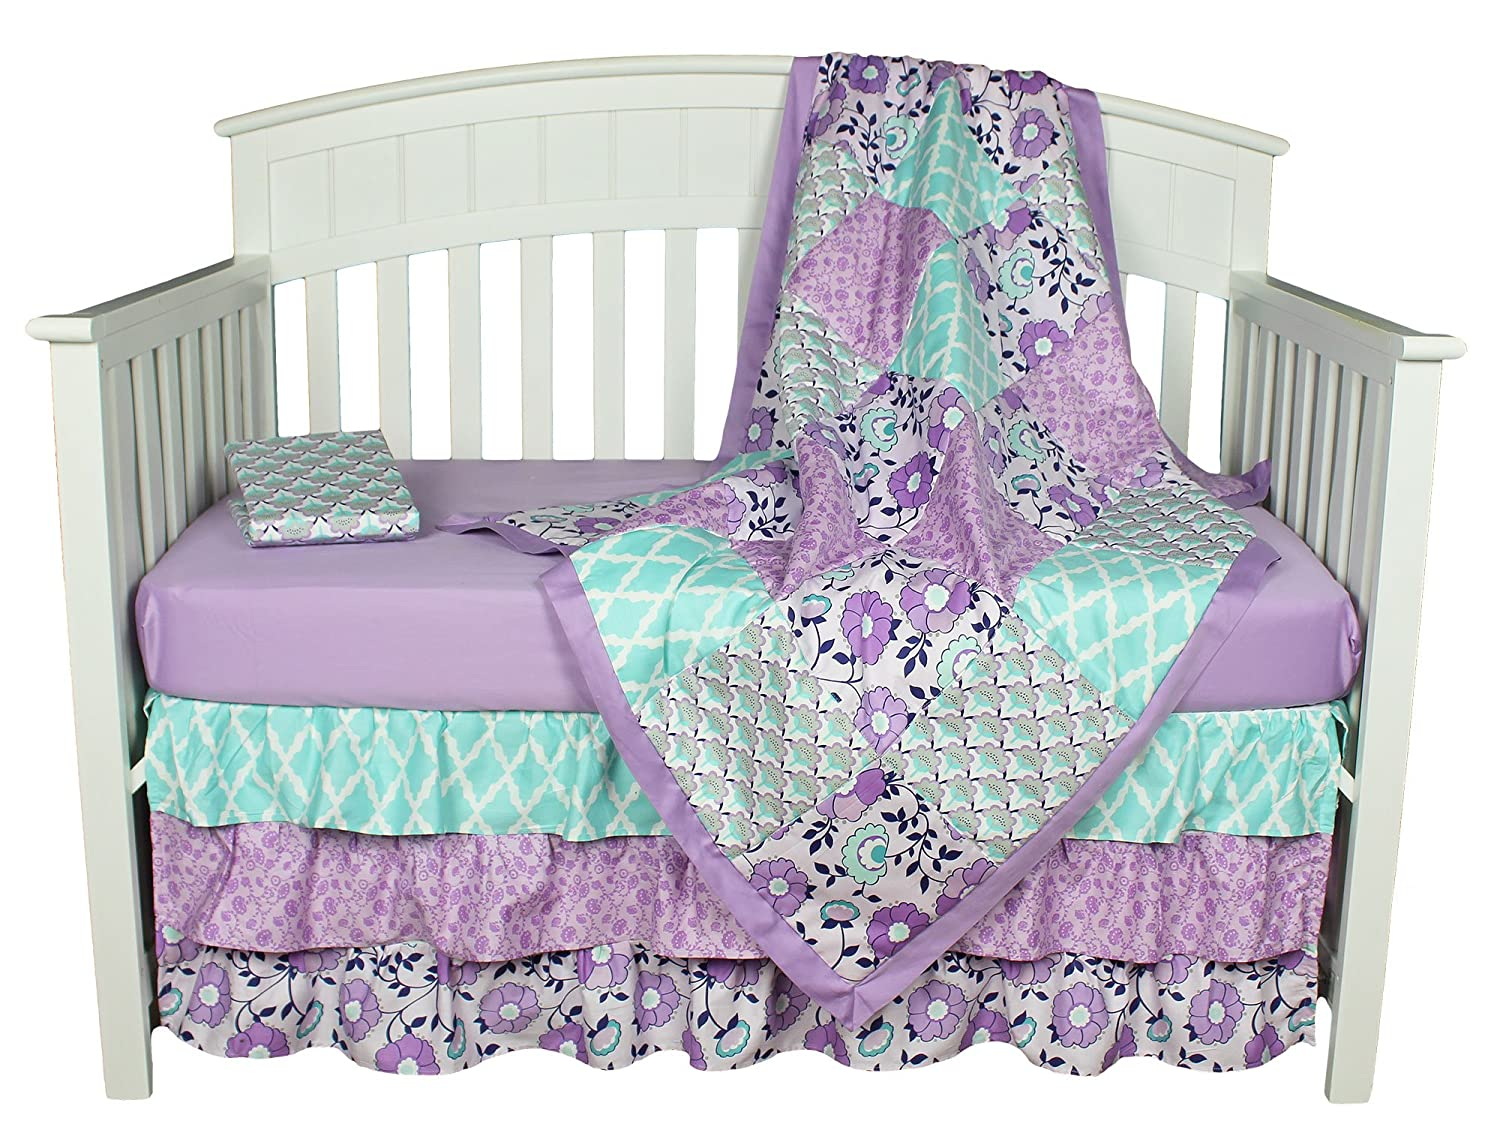 Baby Crib Bedding Set Zoe 4 Piece Purple Girls Nursery